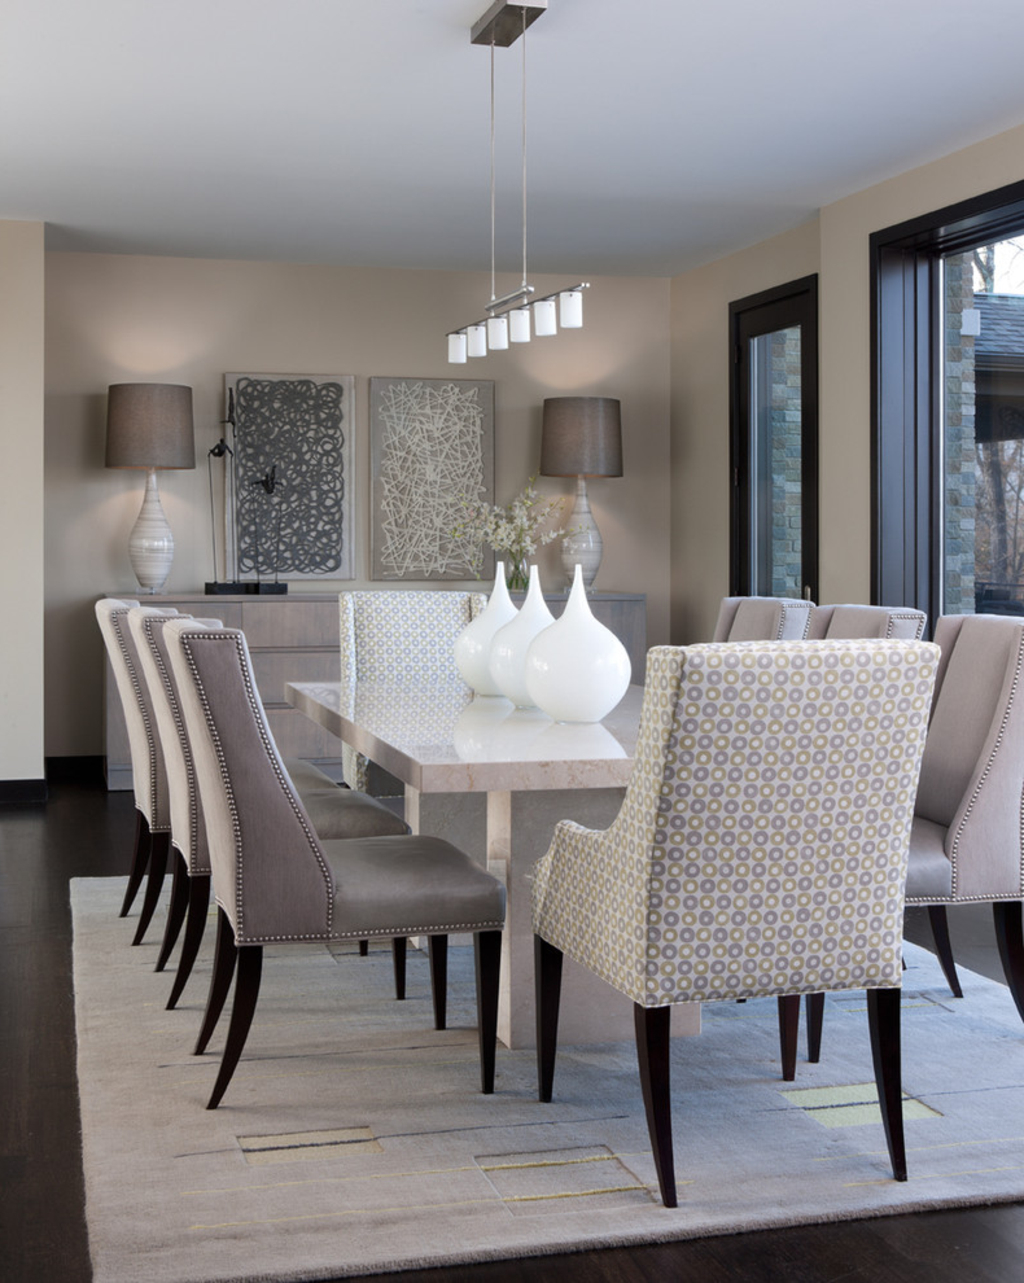 Elegance Mosaic Dining Room With Marble Table (Image 3 of 6)